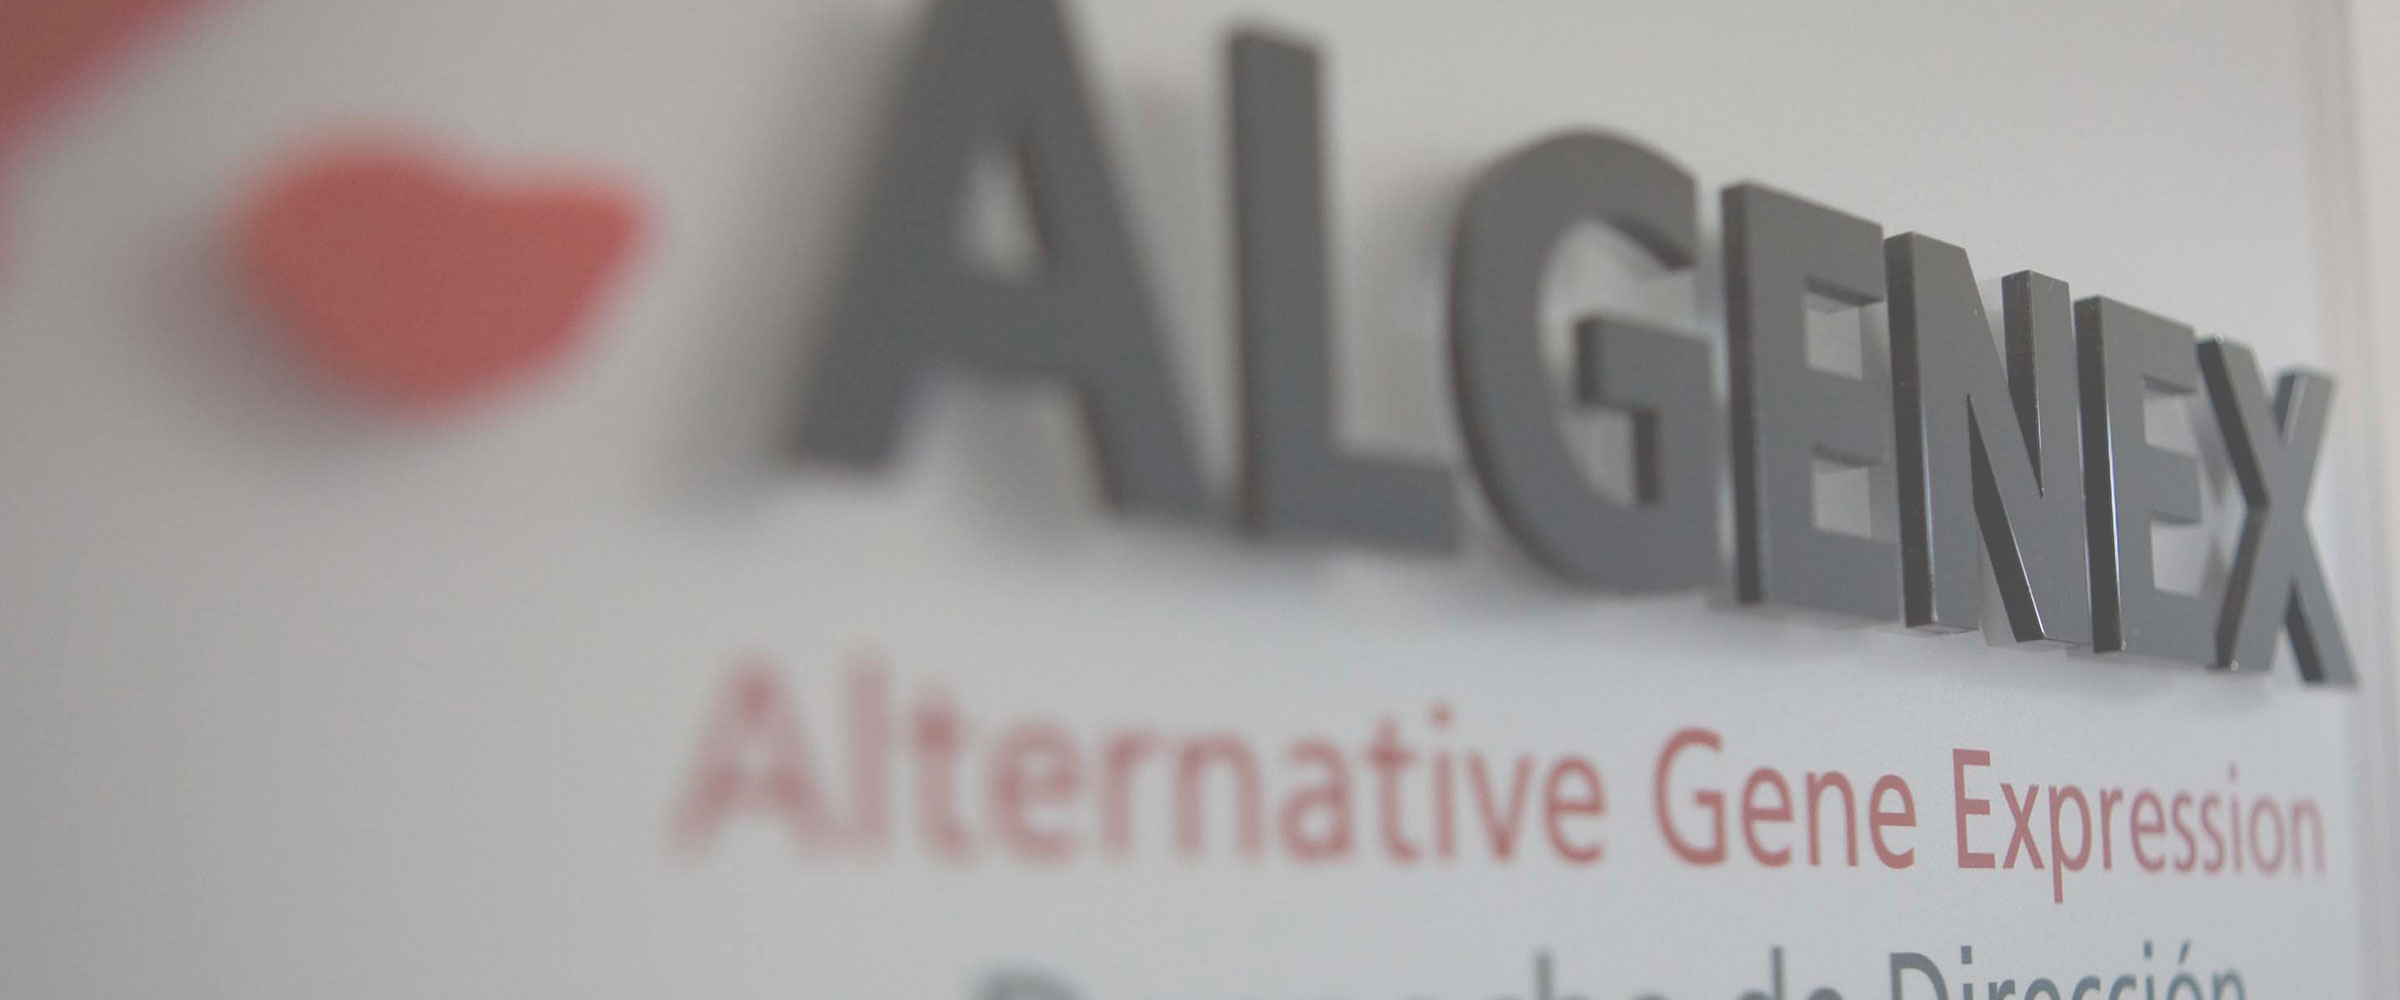 Algenex and Global DX sign agreement to develop and commercialize diagnostic products for the detection of African Swine Fever